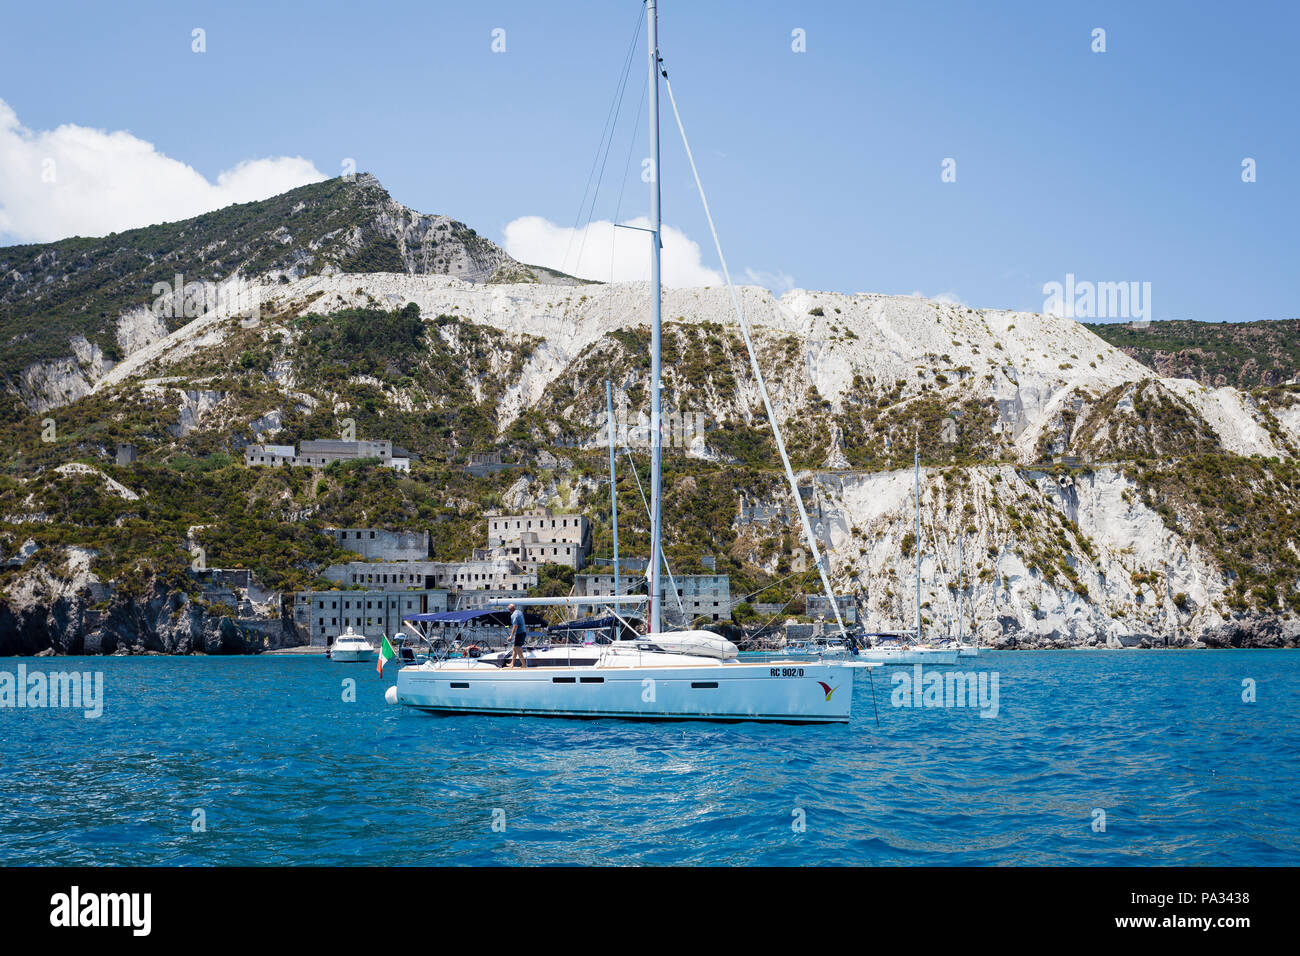 Boats anchored in front of the pumice quarries (cave di pomice) on the island of Lipari, Aeolian Islands, Sicily. Stock Photo